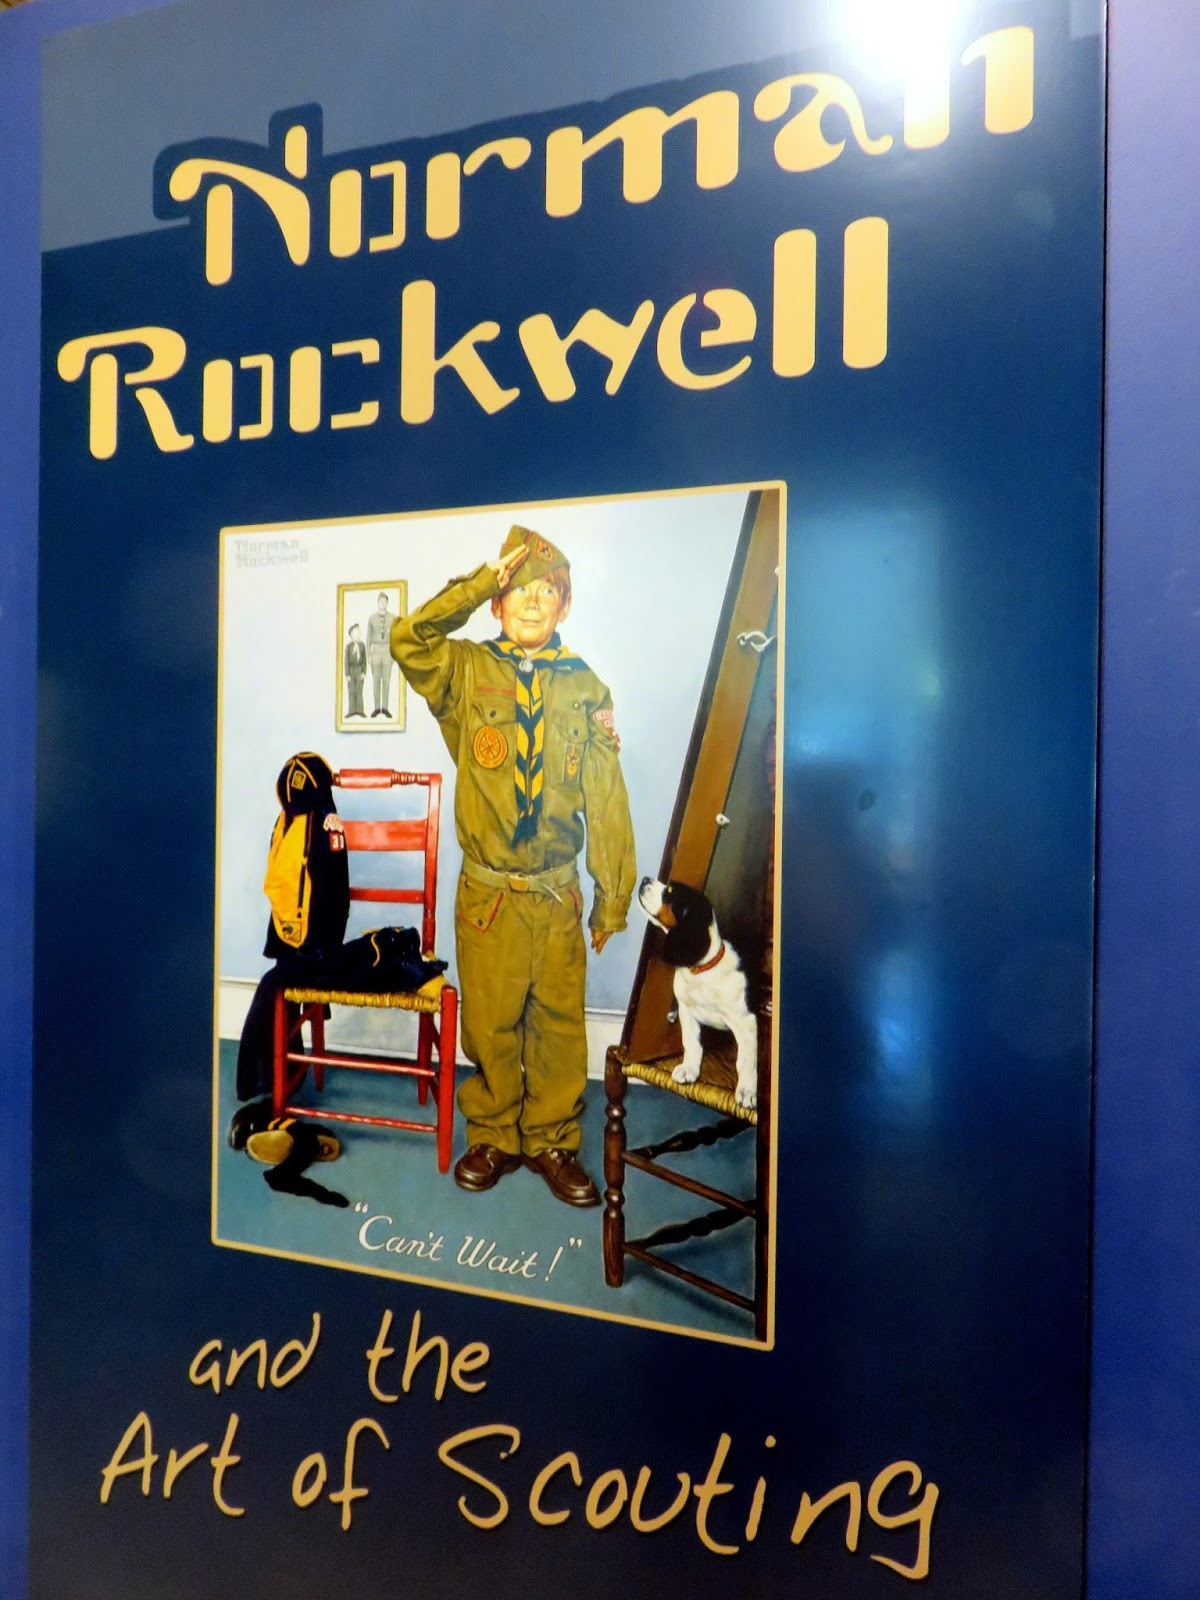 The Marmelade Gypsy Primary Blog Norman Rockwell and the Art of